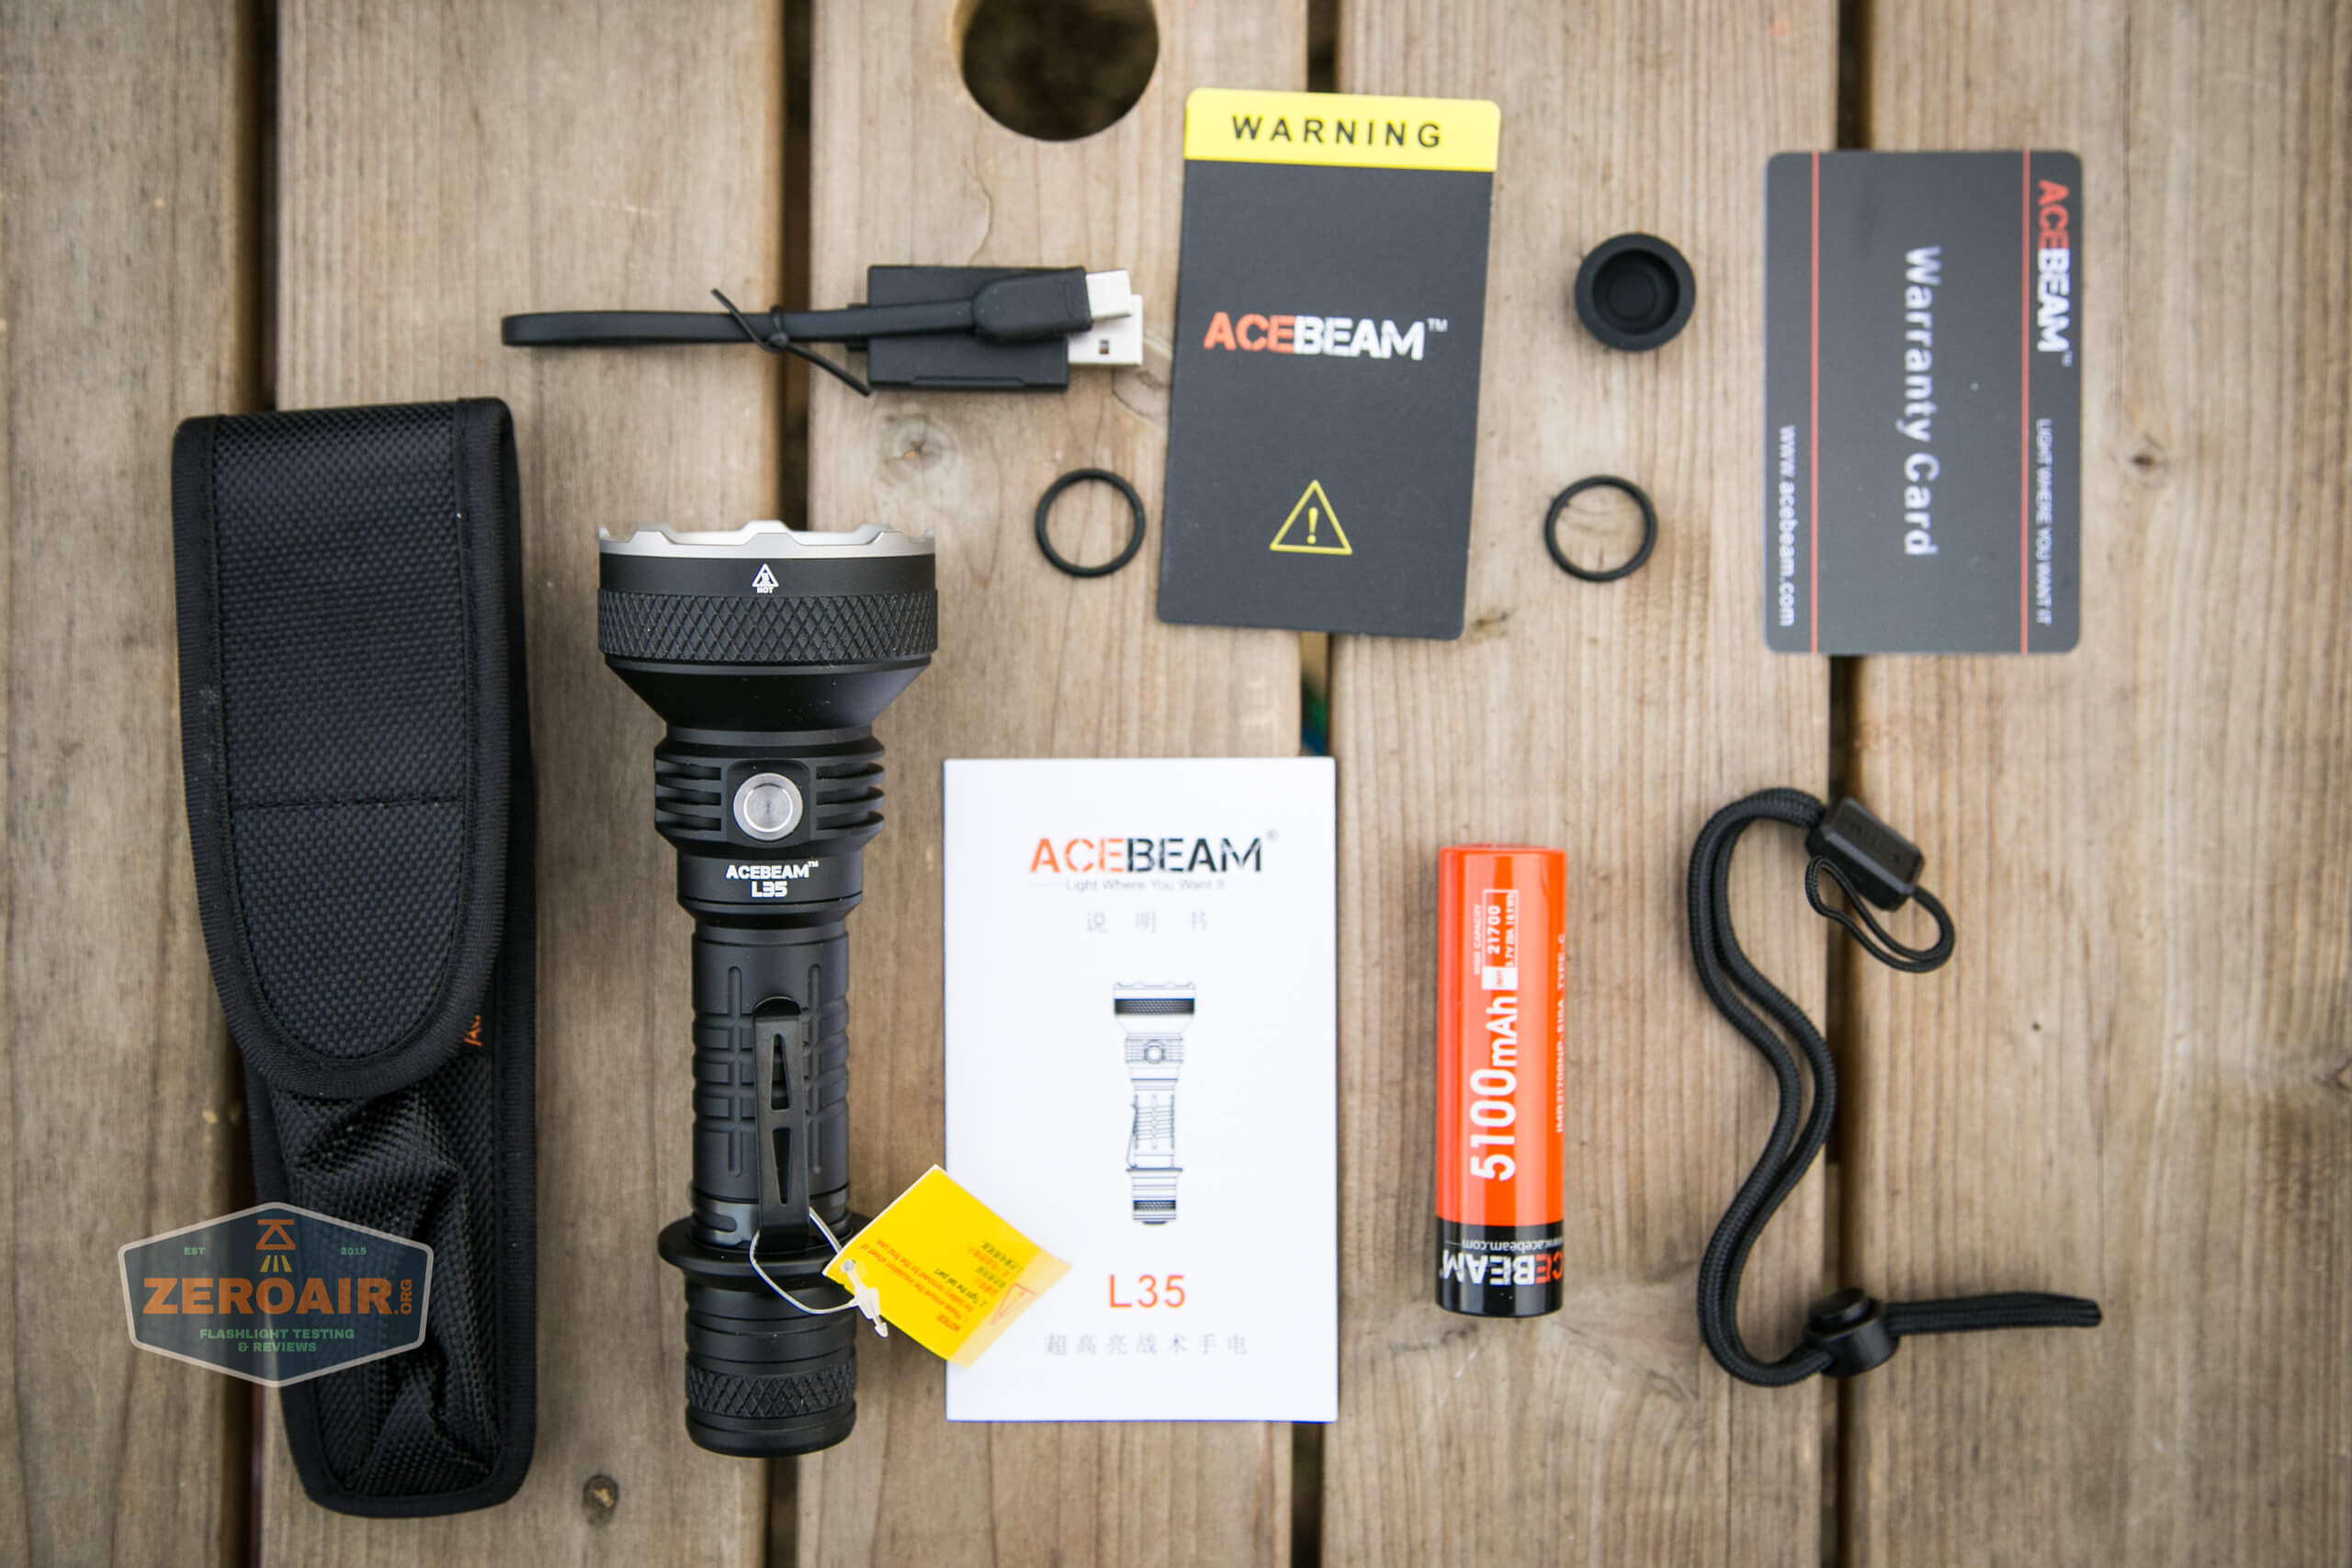 acebeam l35 flashlight what's included